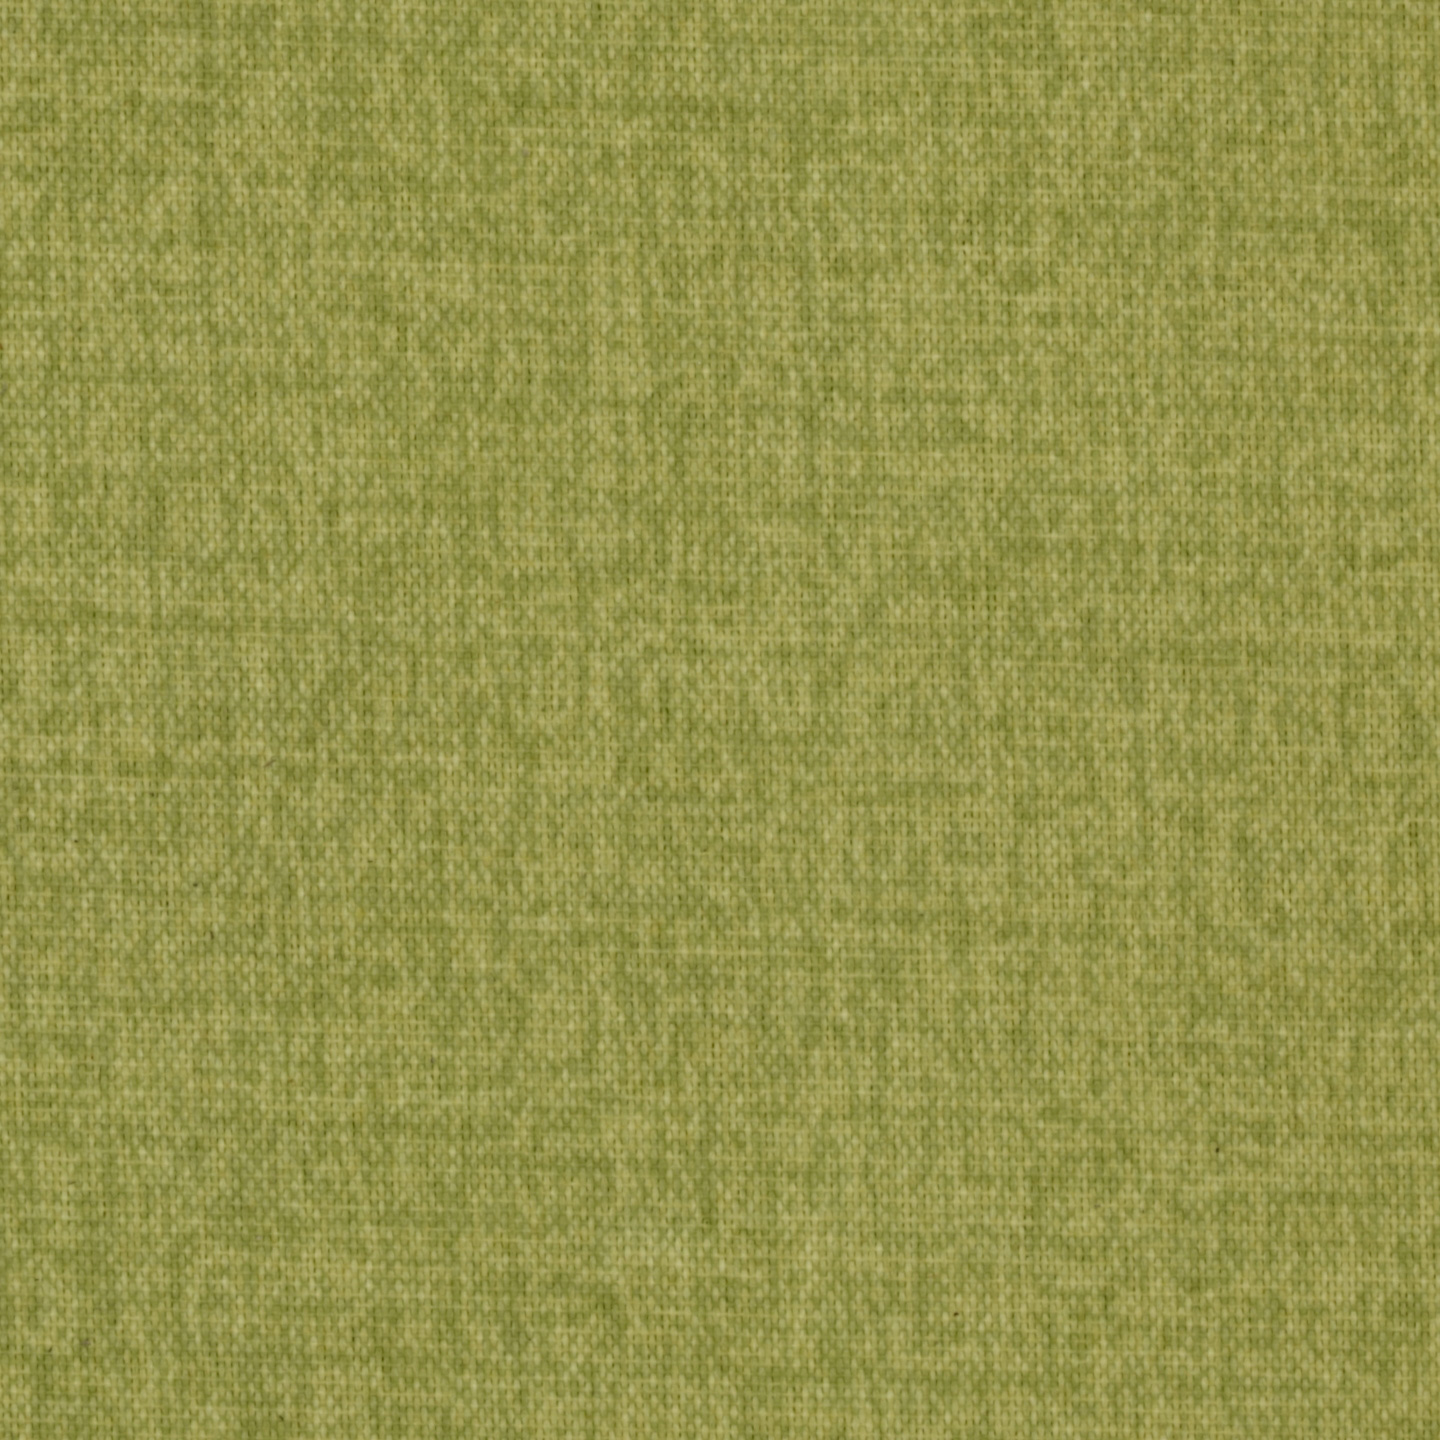 Maco Indoor/Outdoor Husk Texture Celadon Fabric